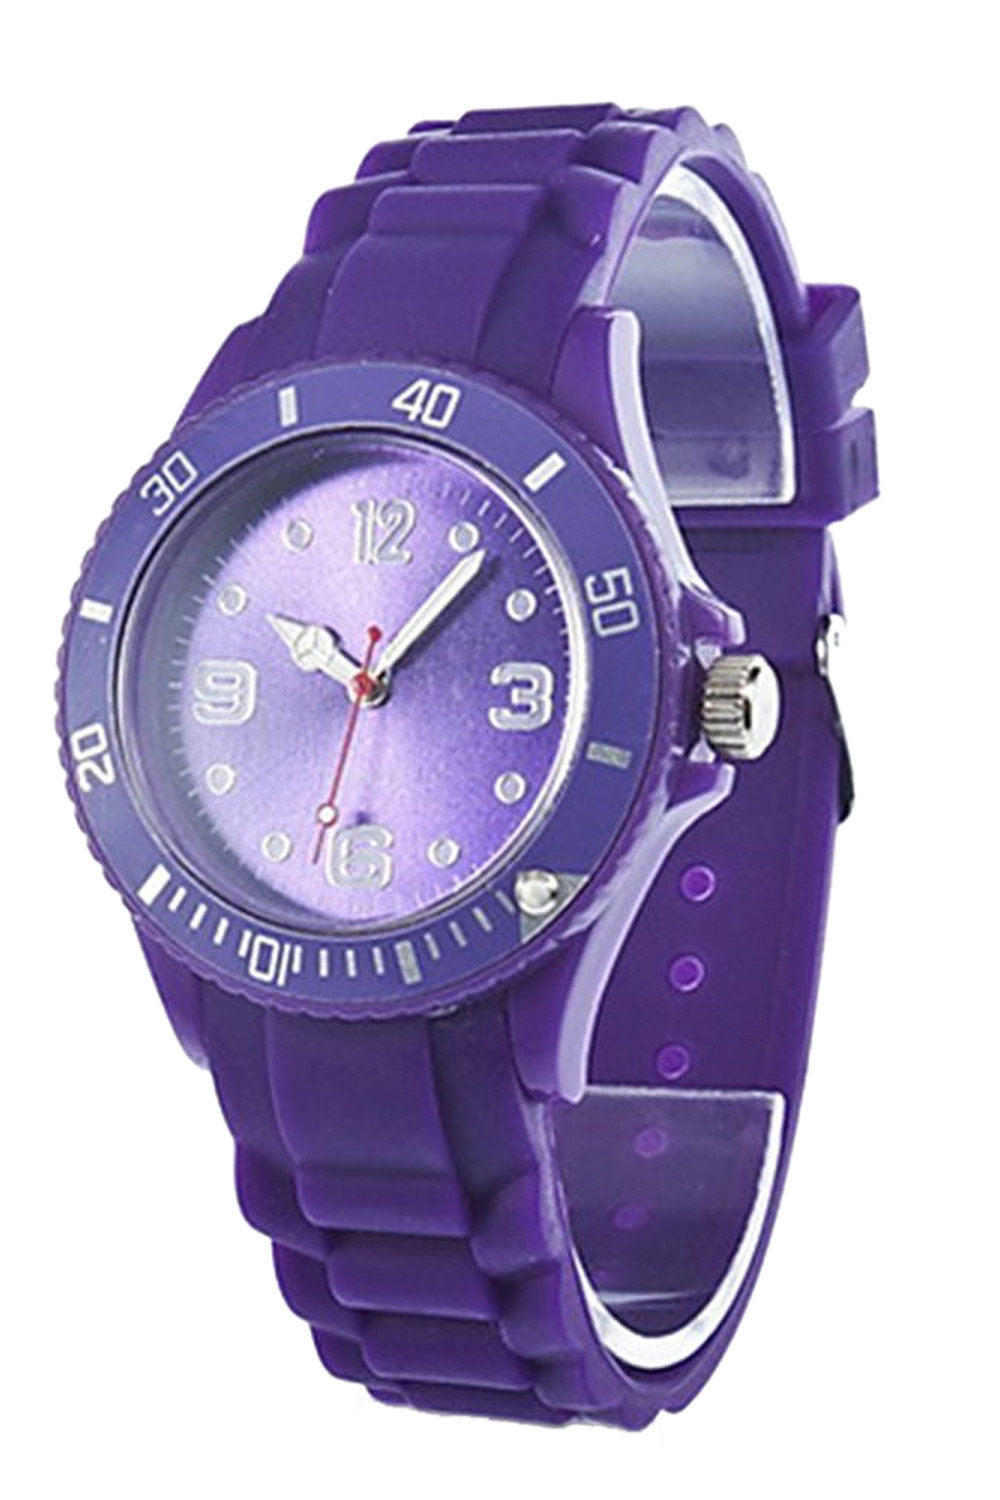 YCYS!Classic Stylish Silicon Jelly Strap Womens Wrist Watch (Purple)YCYS!Classic Stylish Silicon Jelly Strap Womens Wrist Watch (Purple)